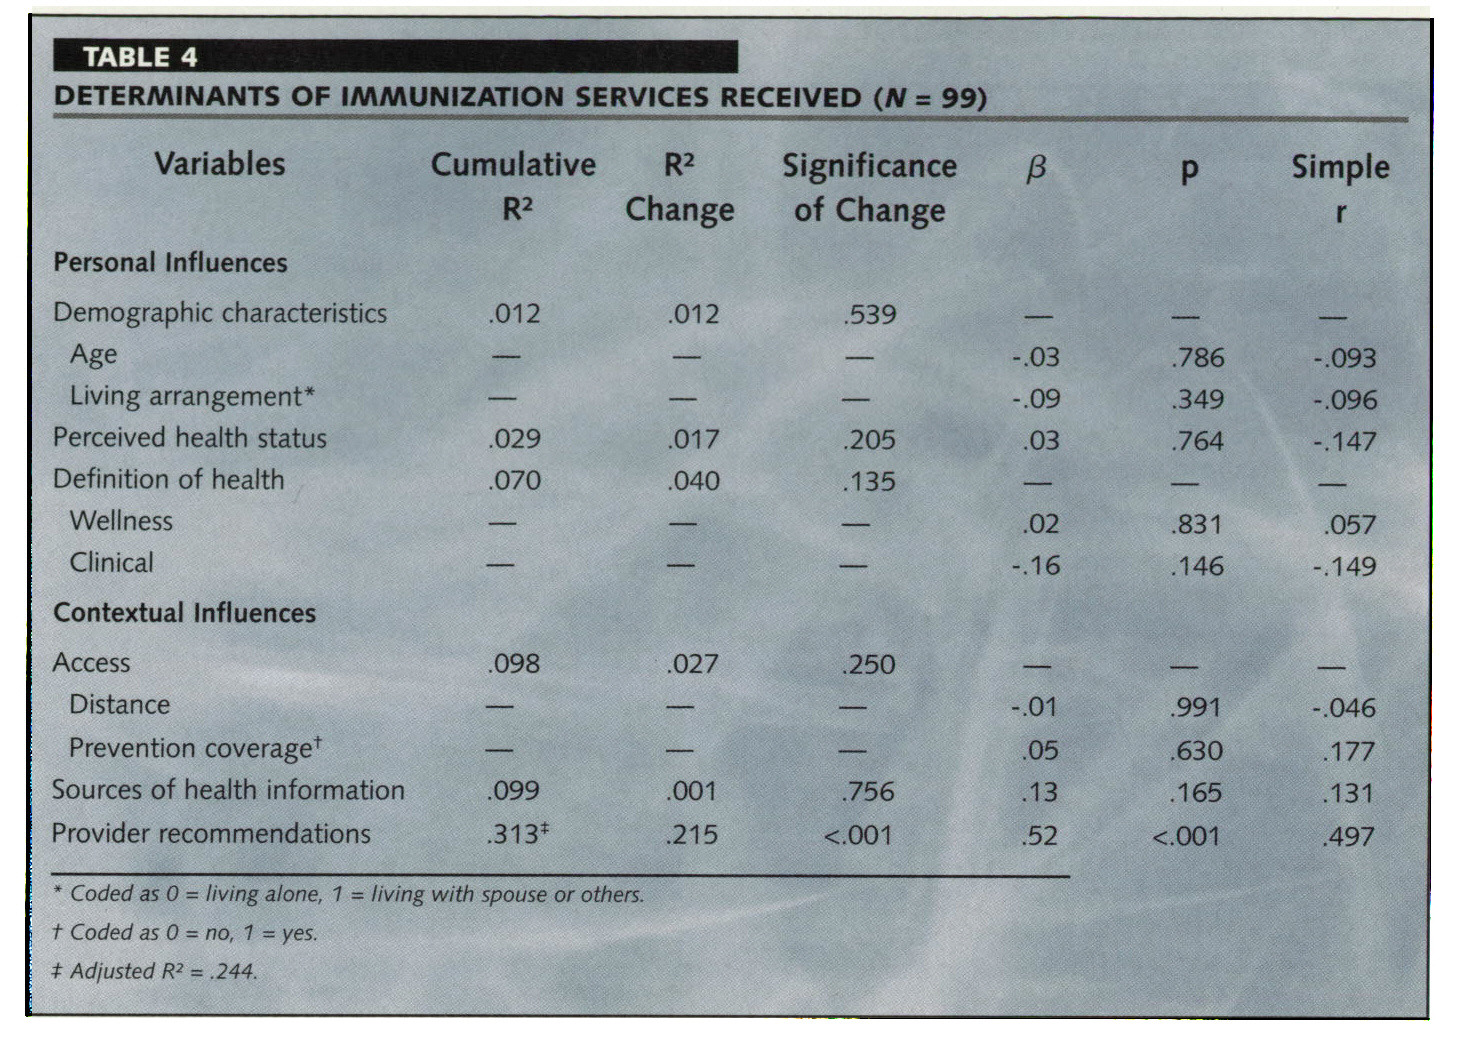 TABLE 4DETERMINANTS OF IMMUNIZATION SERVICES RECEIVED (N = 99)